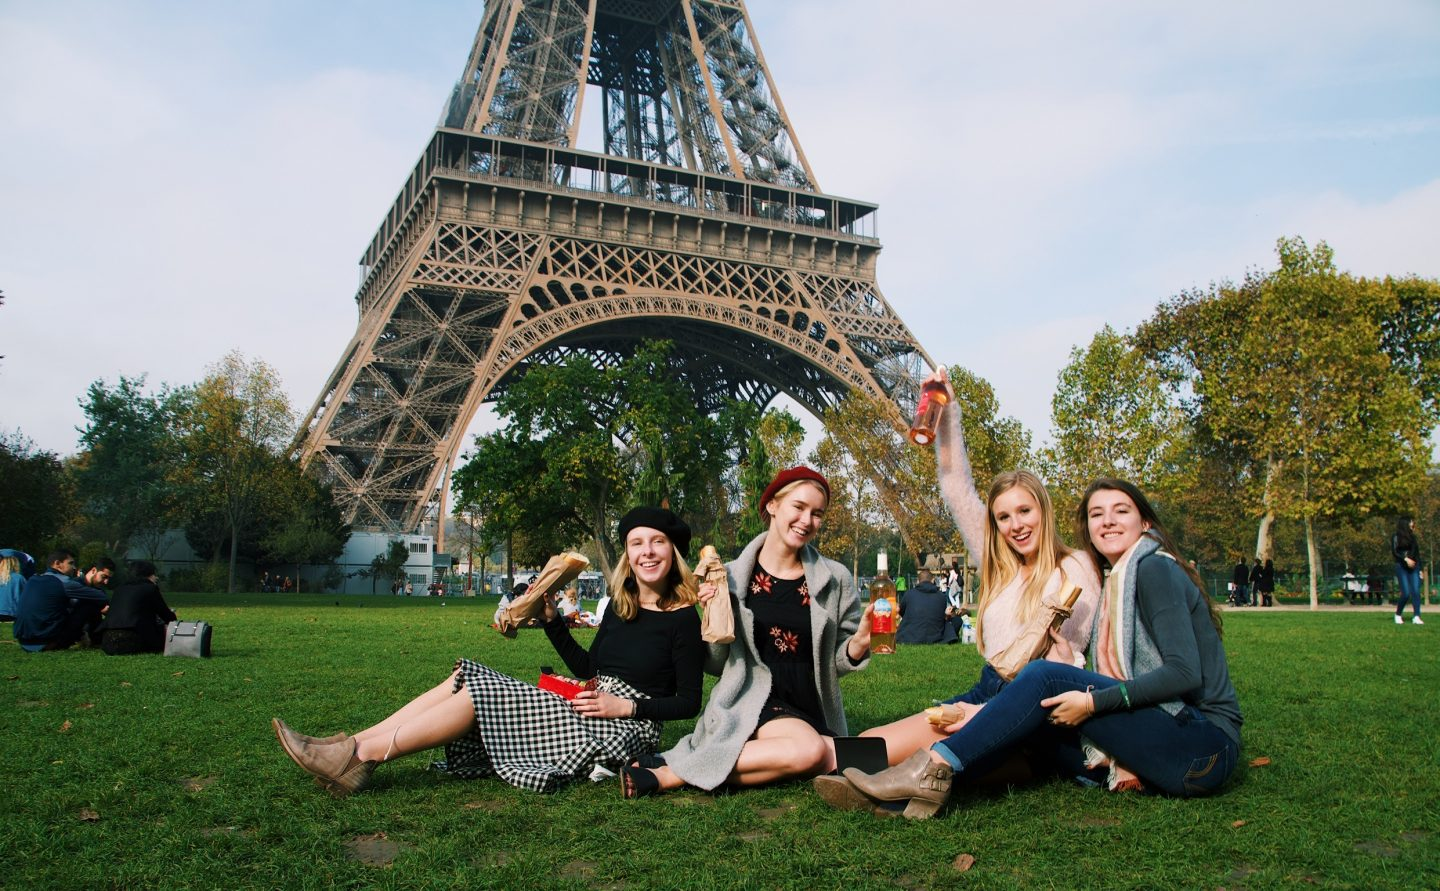 Enjoying a picnic in front of the Eiffel Tower with wine and cheese!